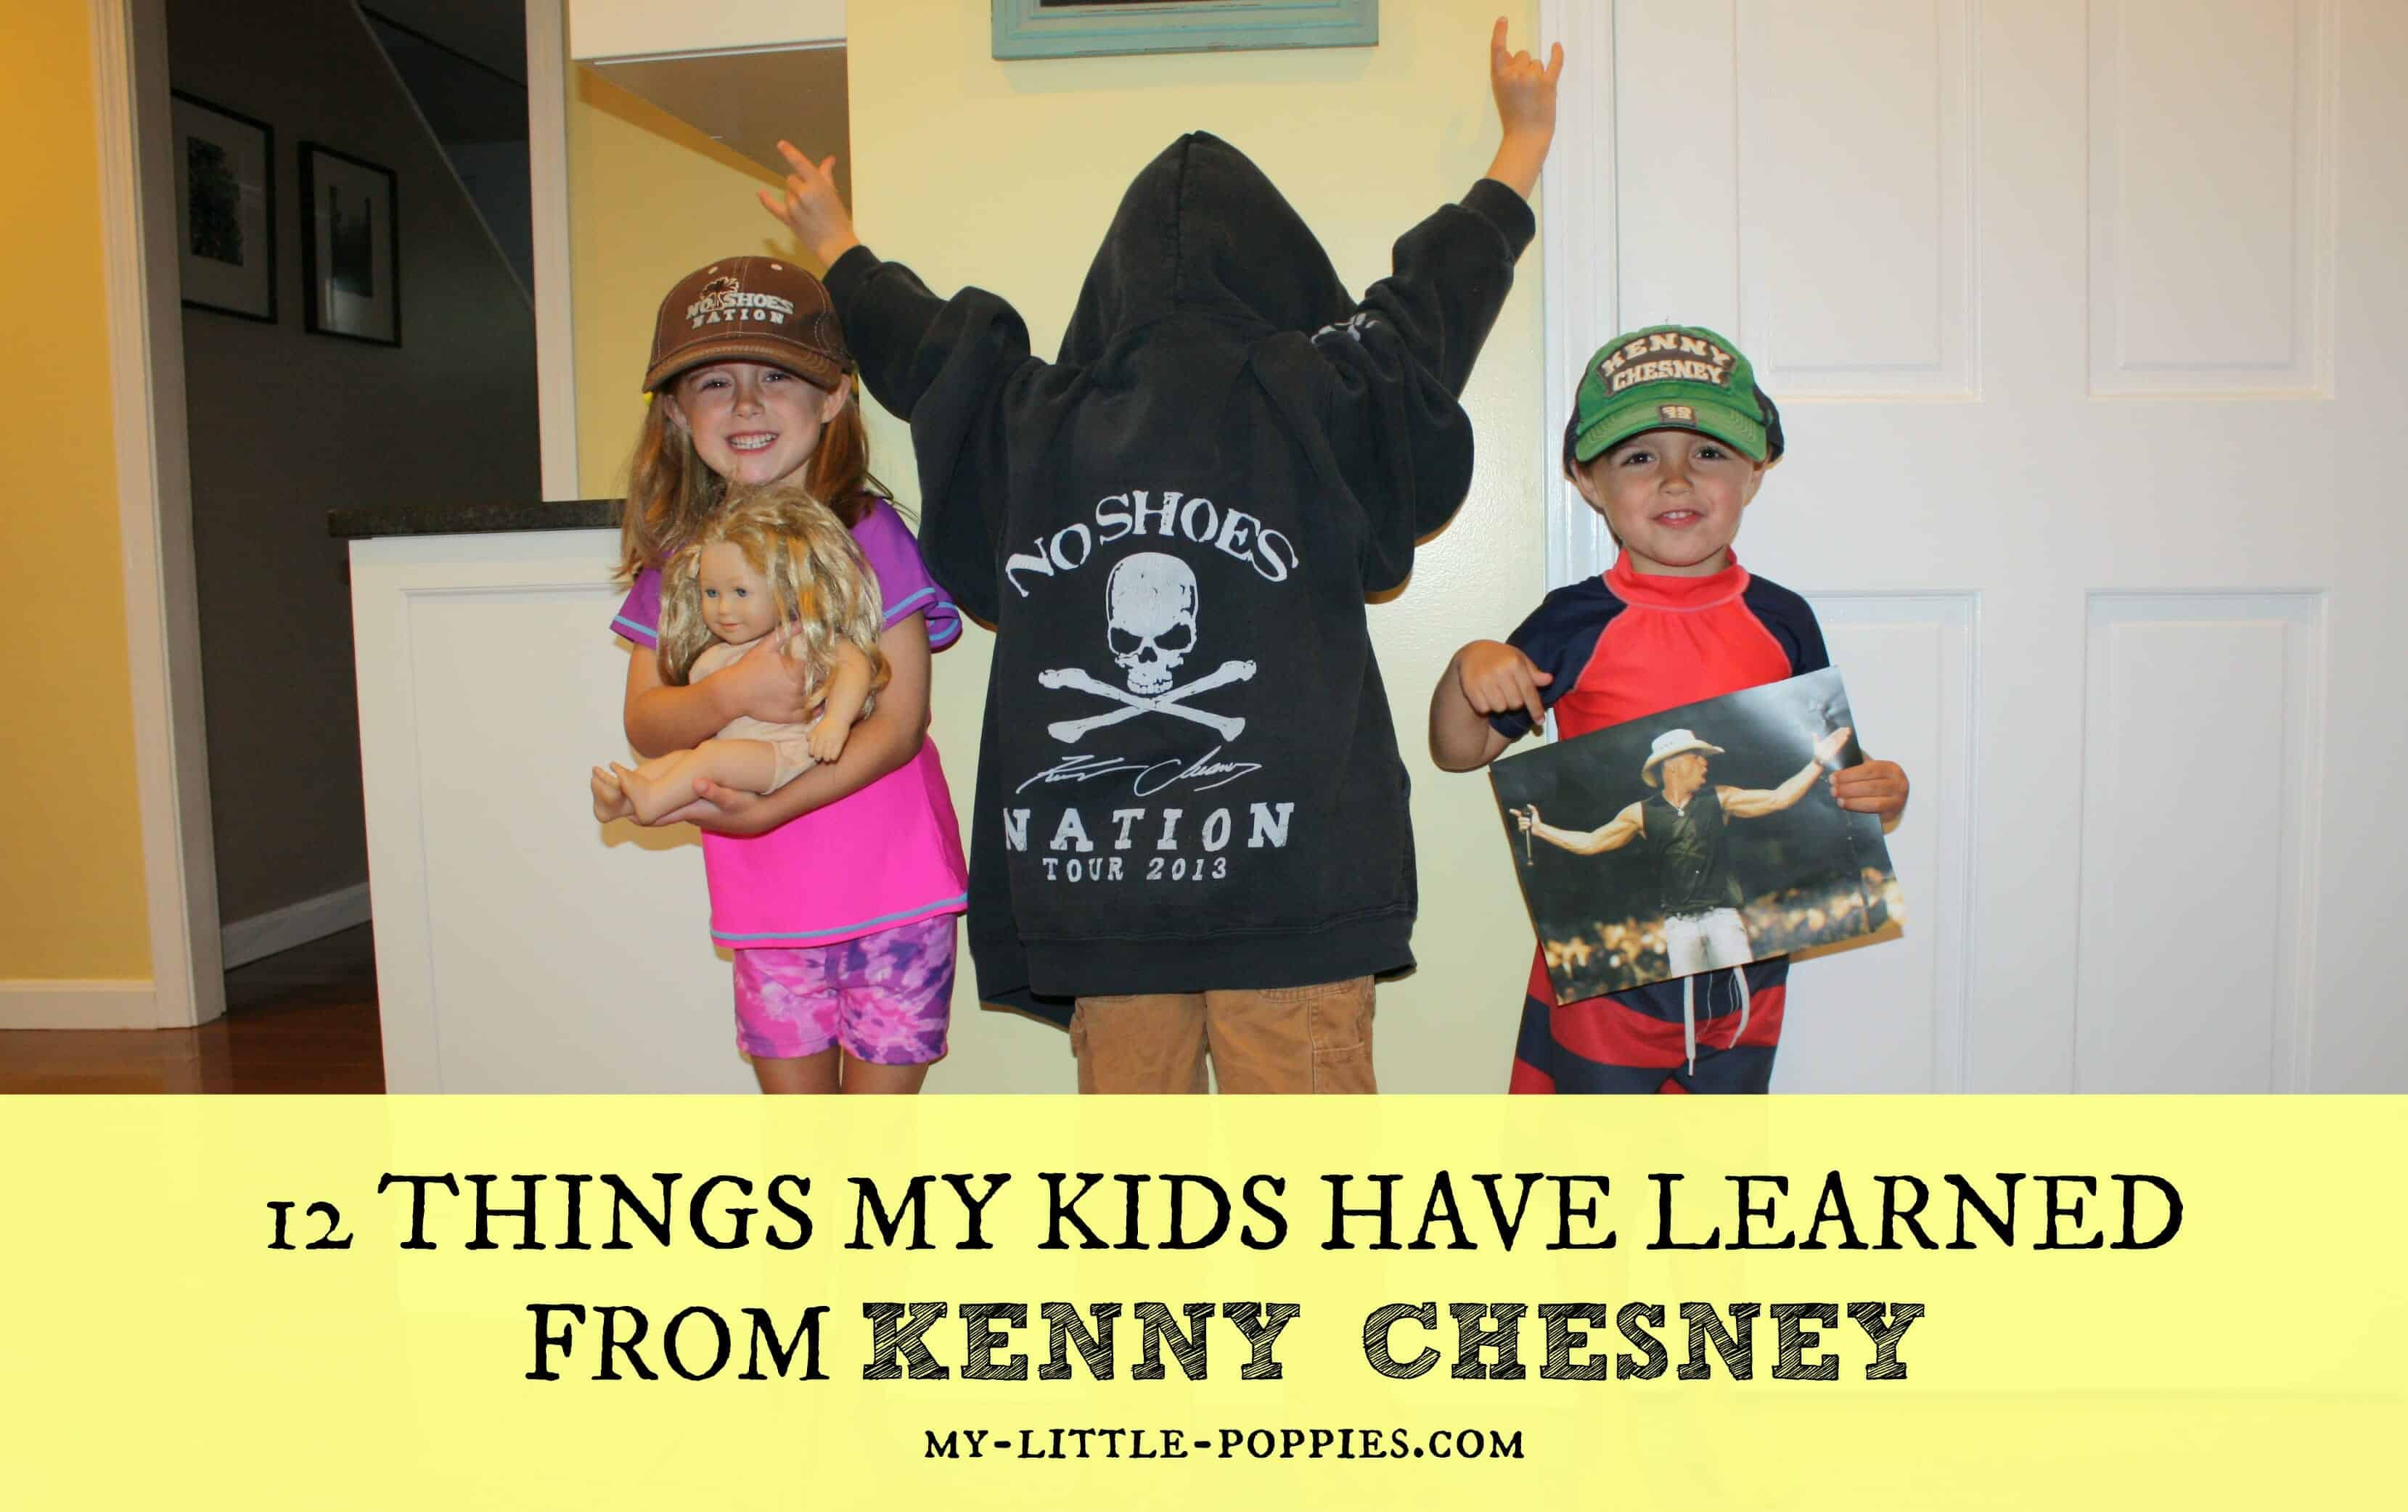 12 Things My Kids Have Learned from Kenny Chesney 1